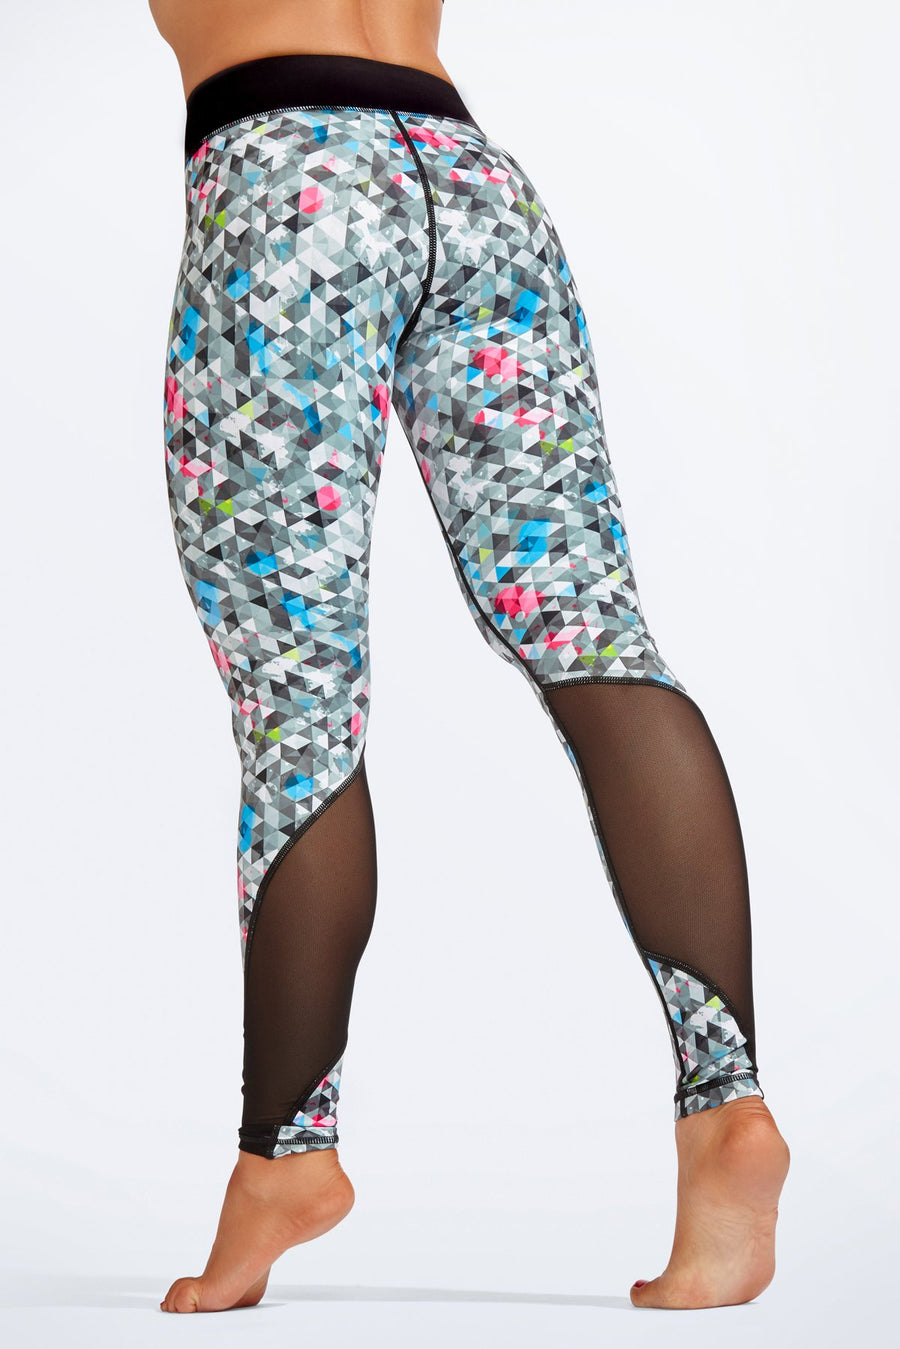 Austin Leggings - Mint Athletic Apparel